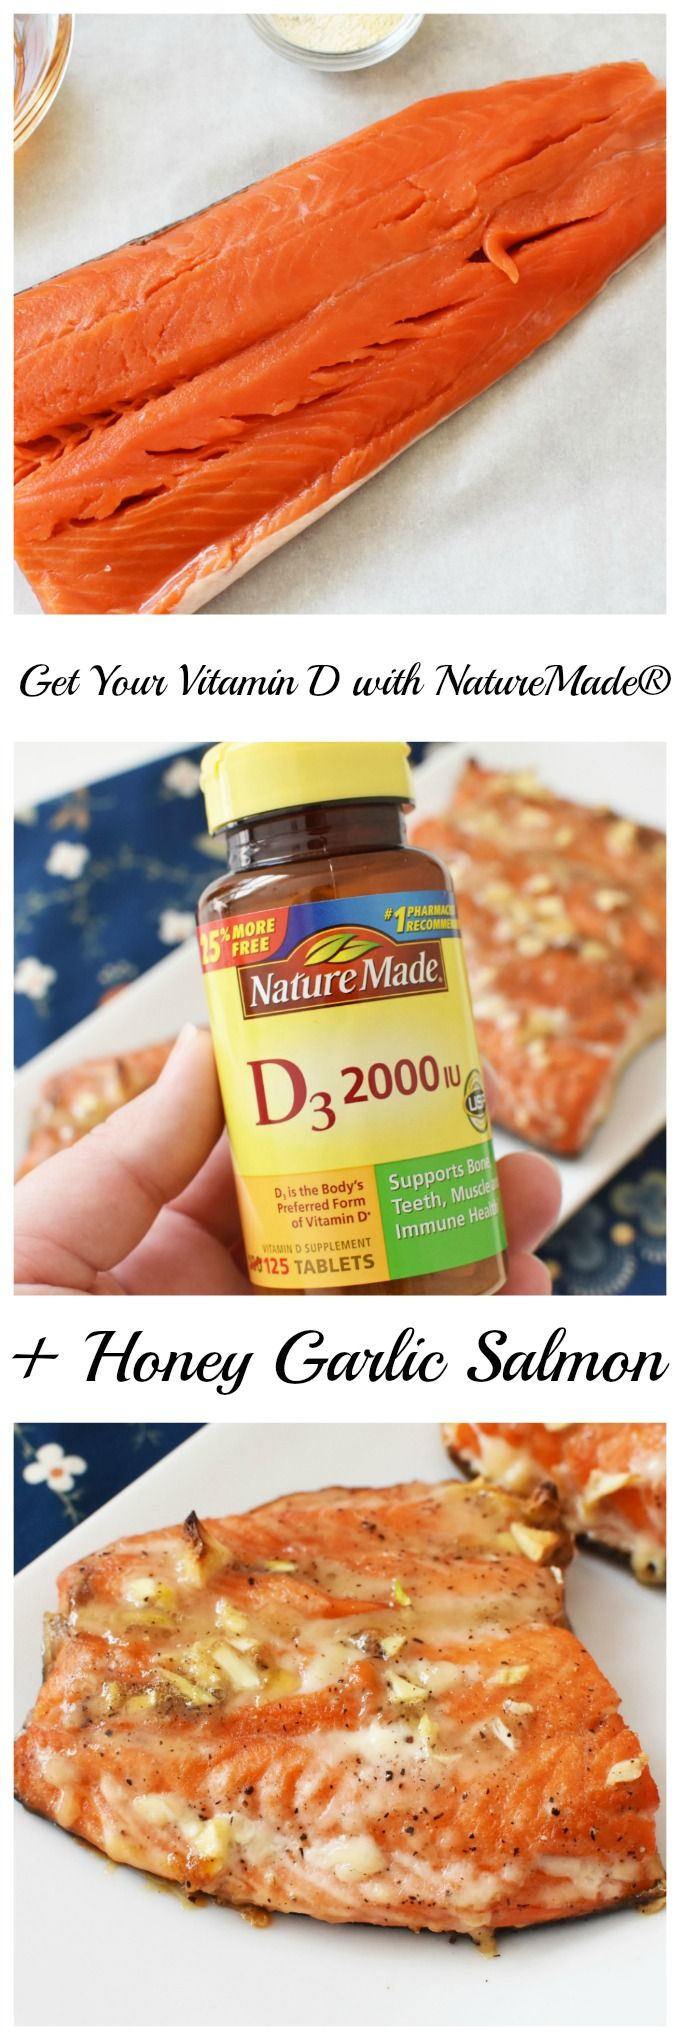 Be sure you get enough Vitamin D this winter. Start with this Honey Garlic Salmon recipe. It's loaded with flavor and Vitamin D. Also see how you can add a supplement to your daily life.